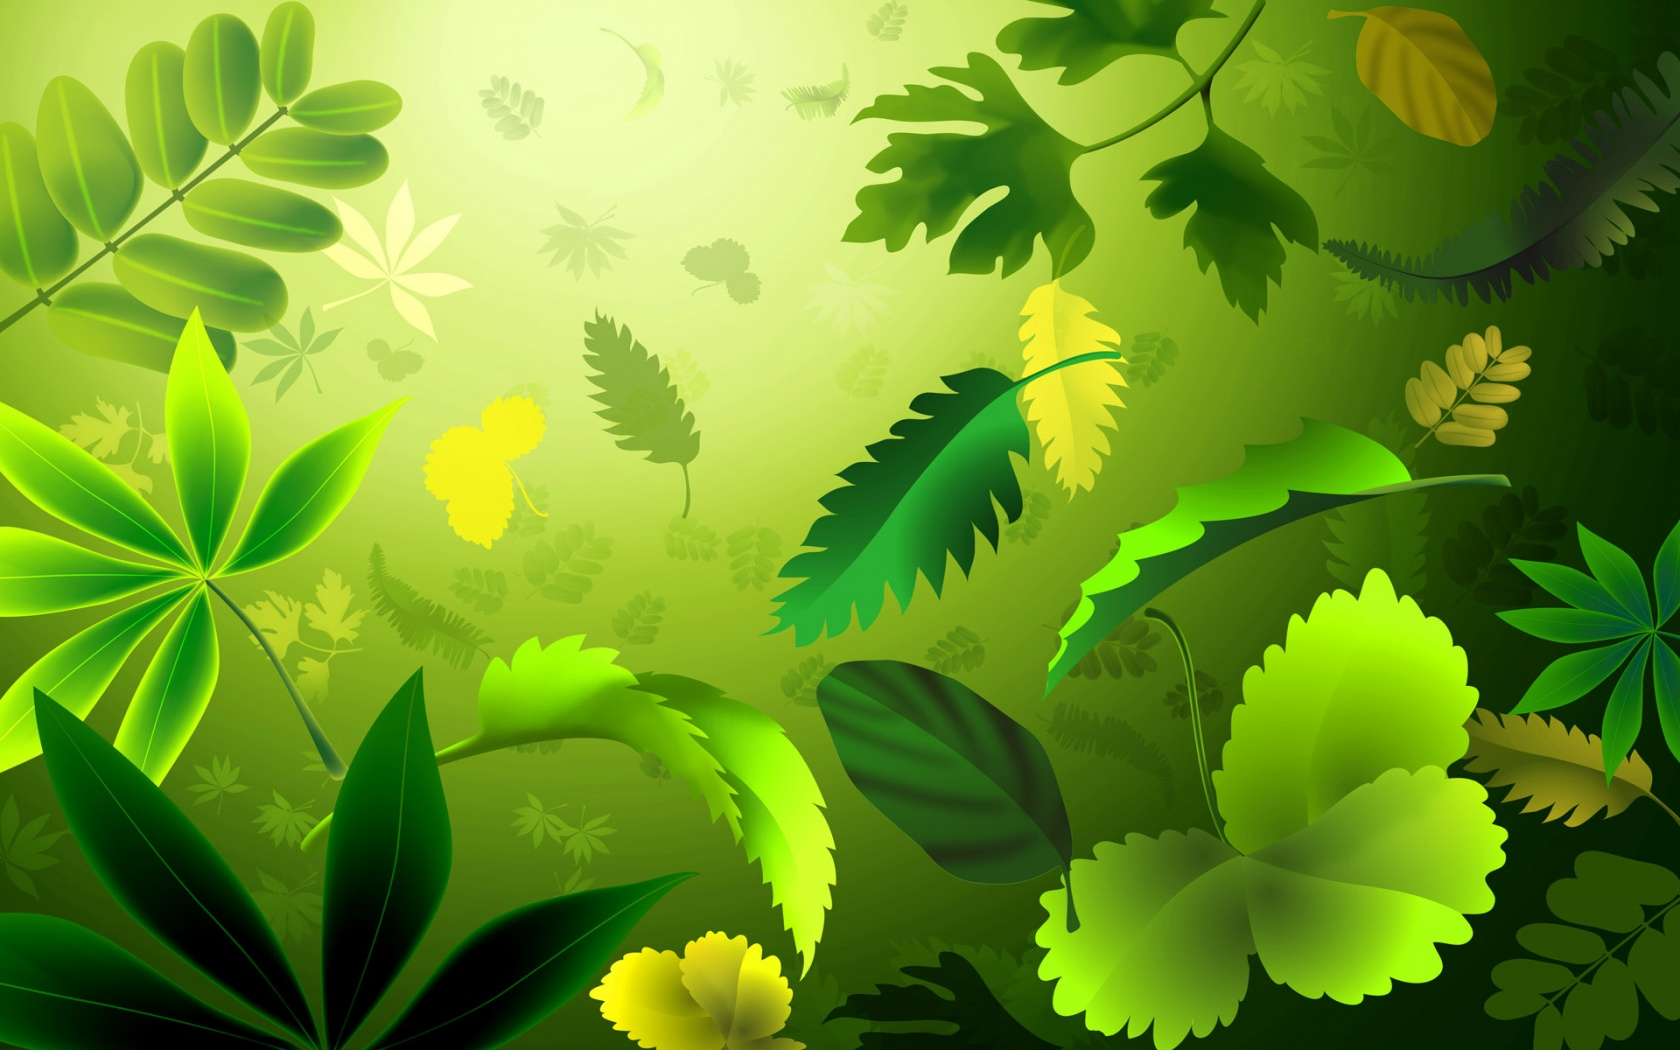 Hd wallpaper green - Green Leafs Wallpapers Hd Wallpapers